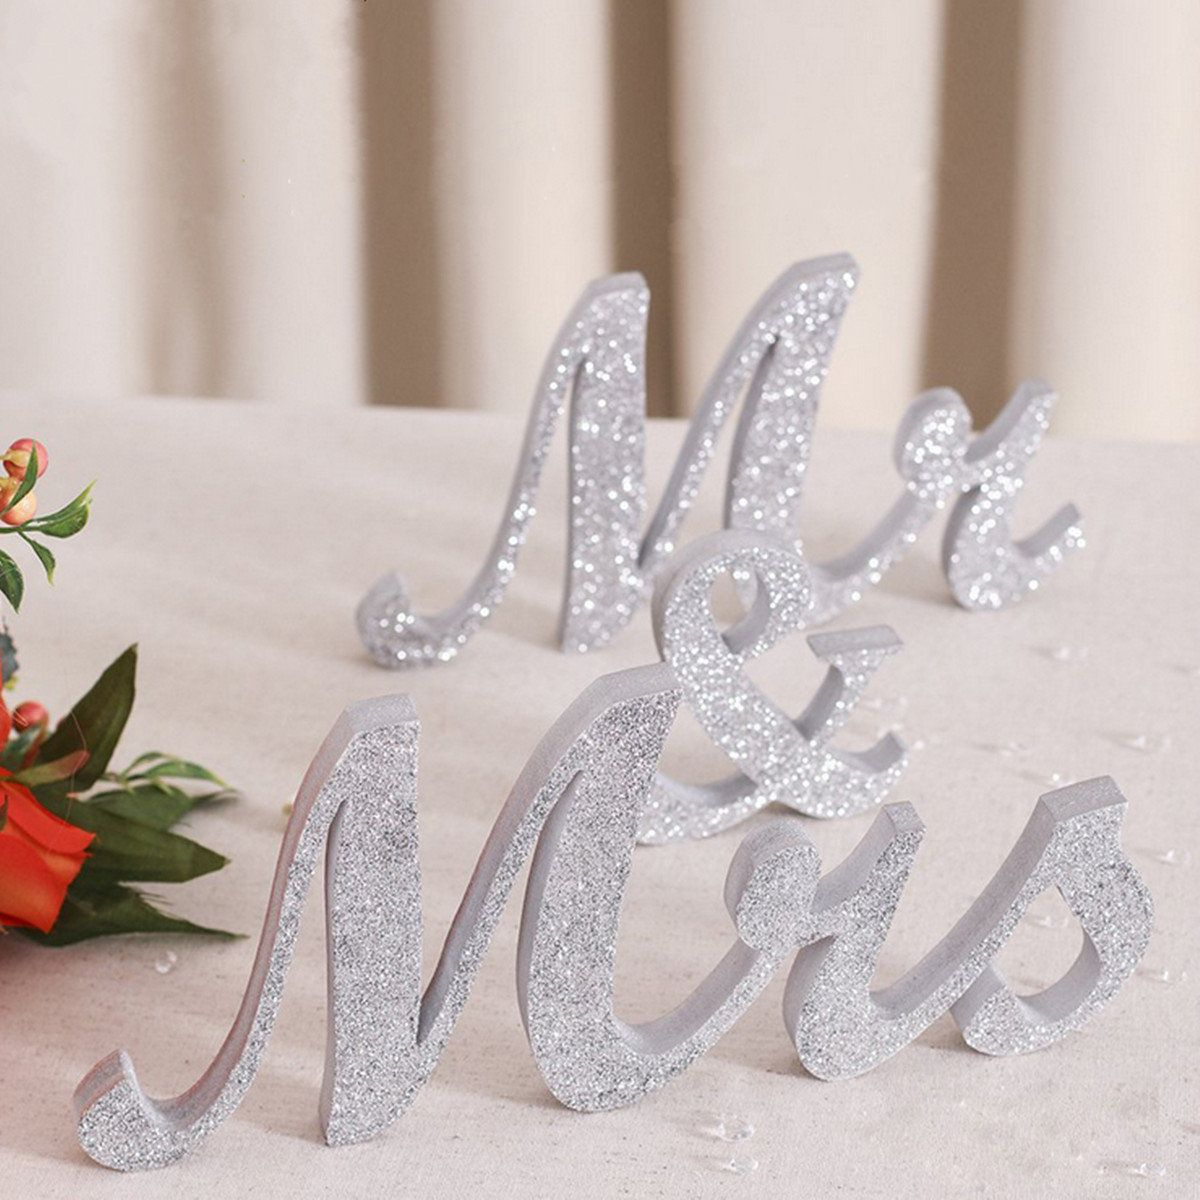 28CM MR&MRS Silver Shining Bling Wooden Letters Sign Table ...